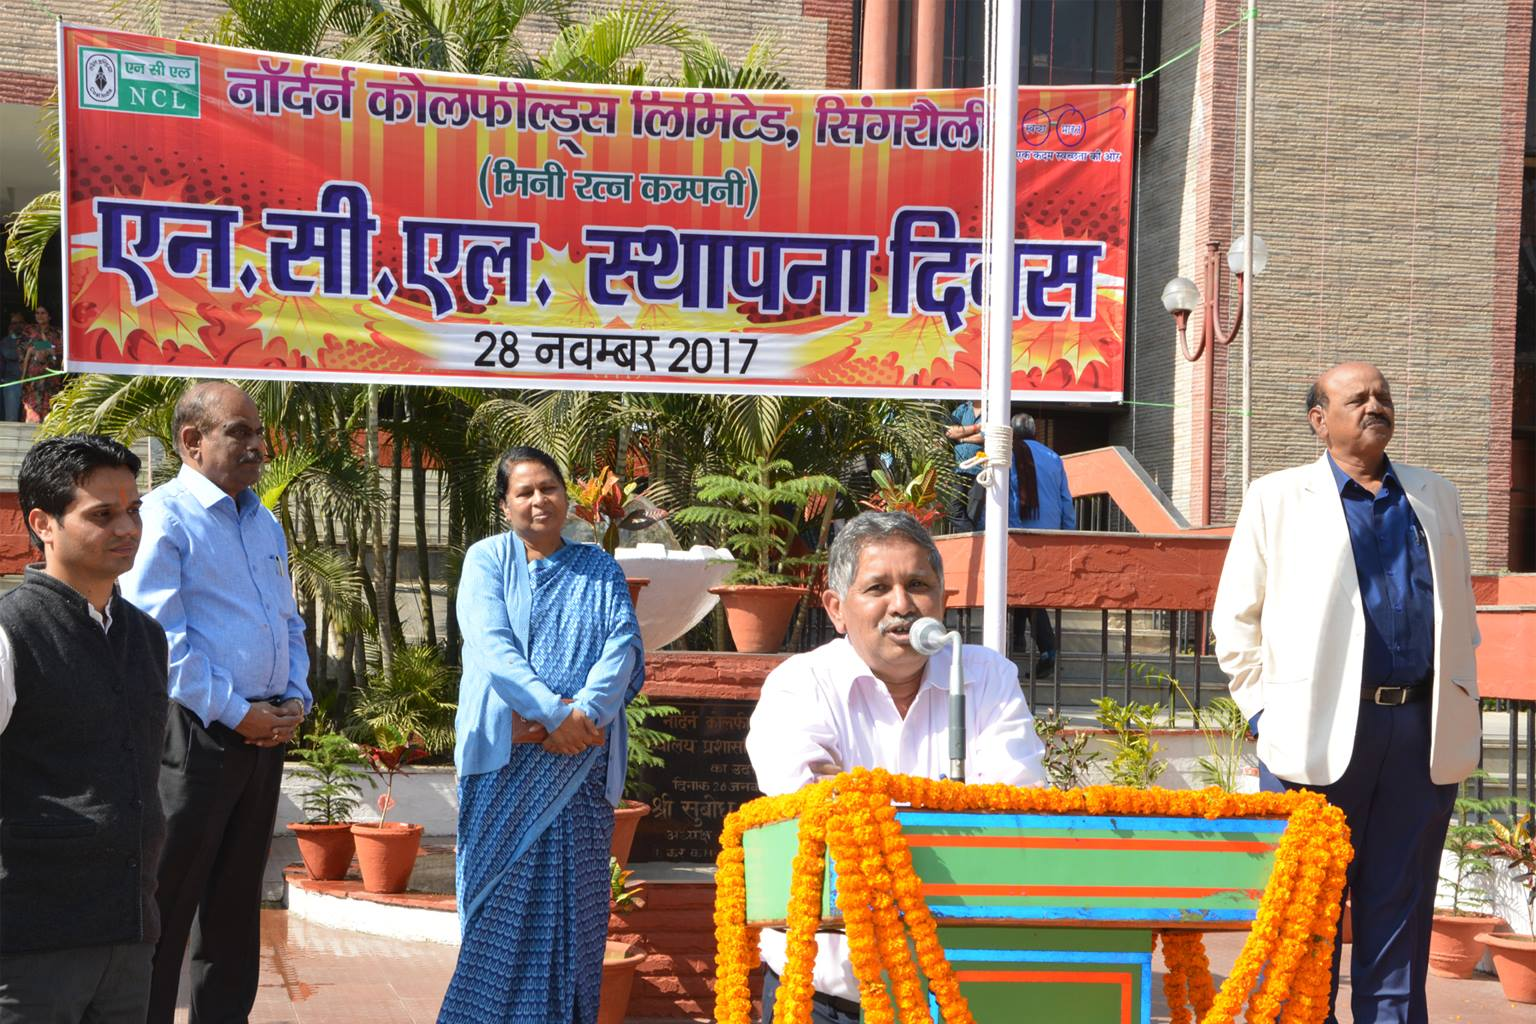 NCL CELEBRATES ITS 33RD FOUNDATION DAY